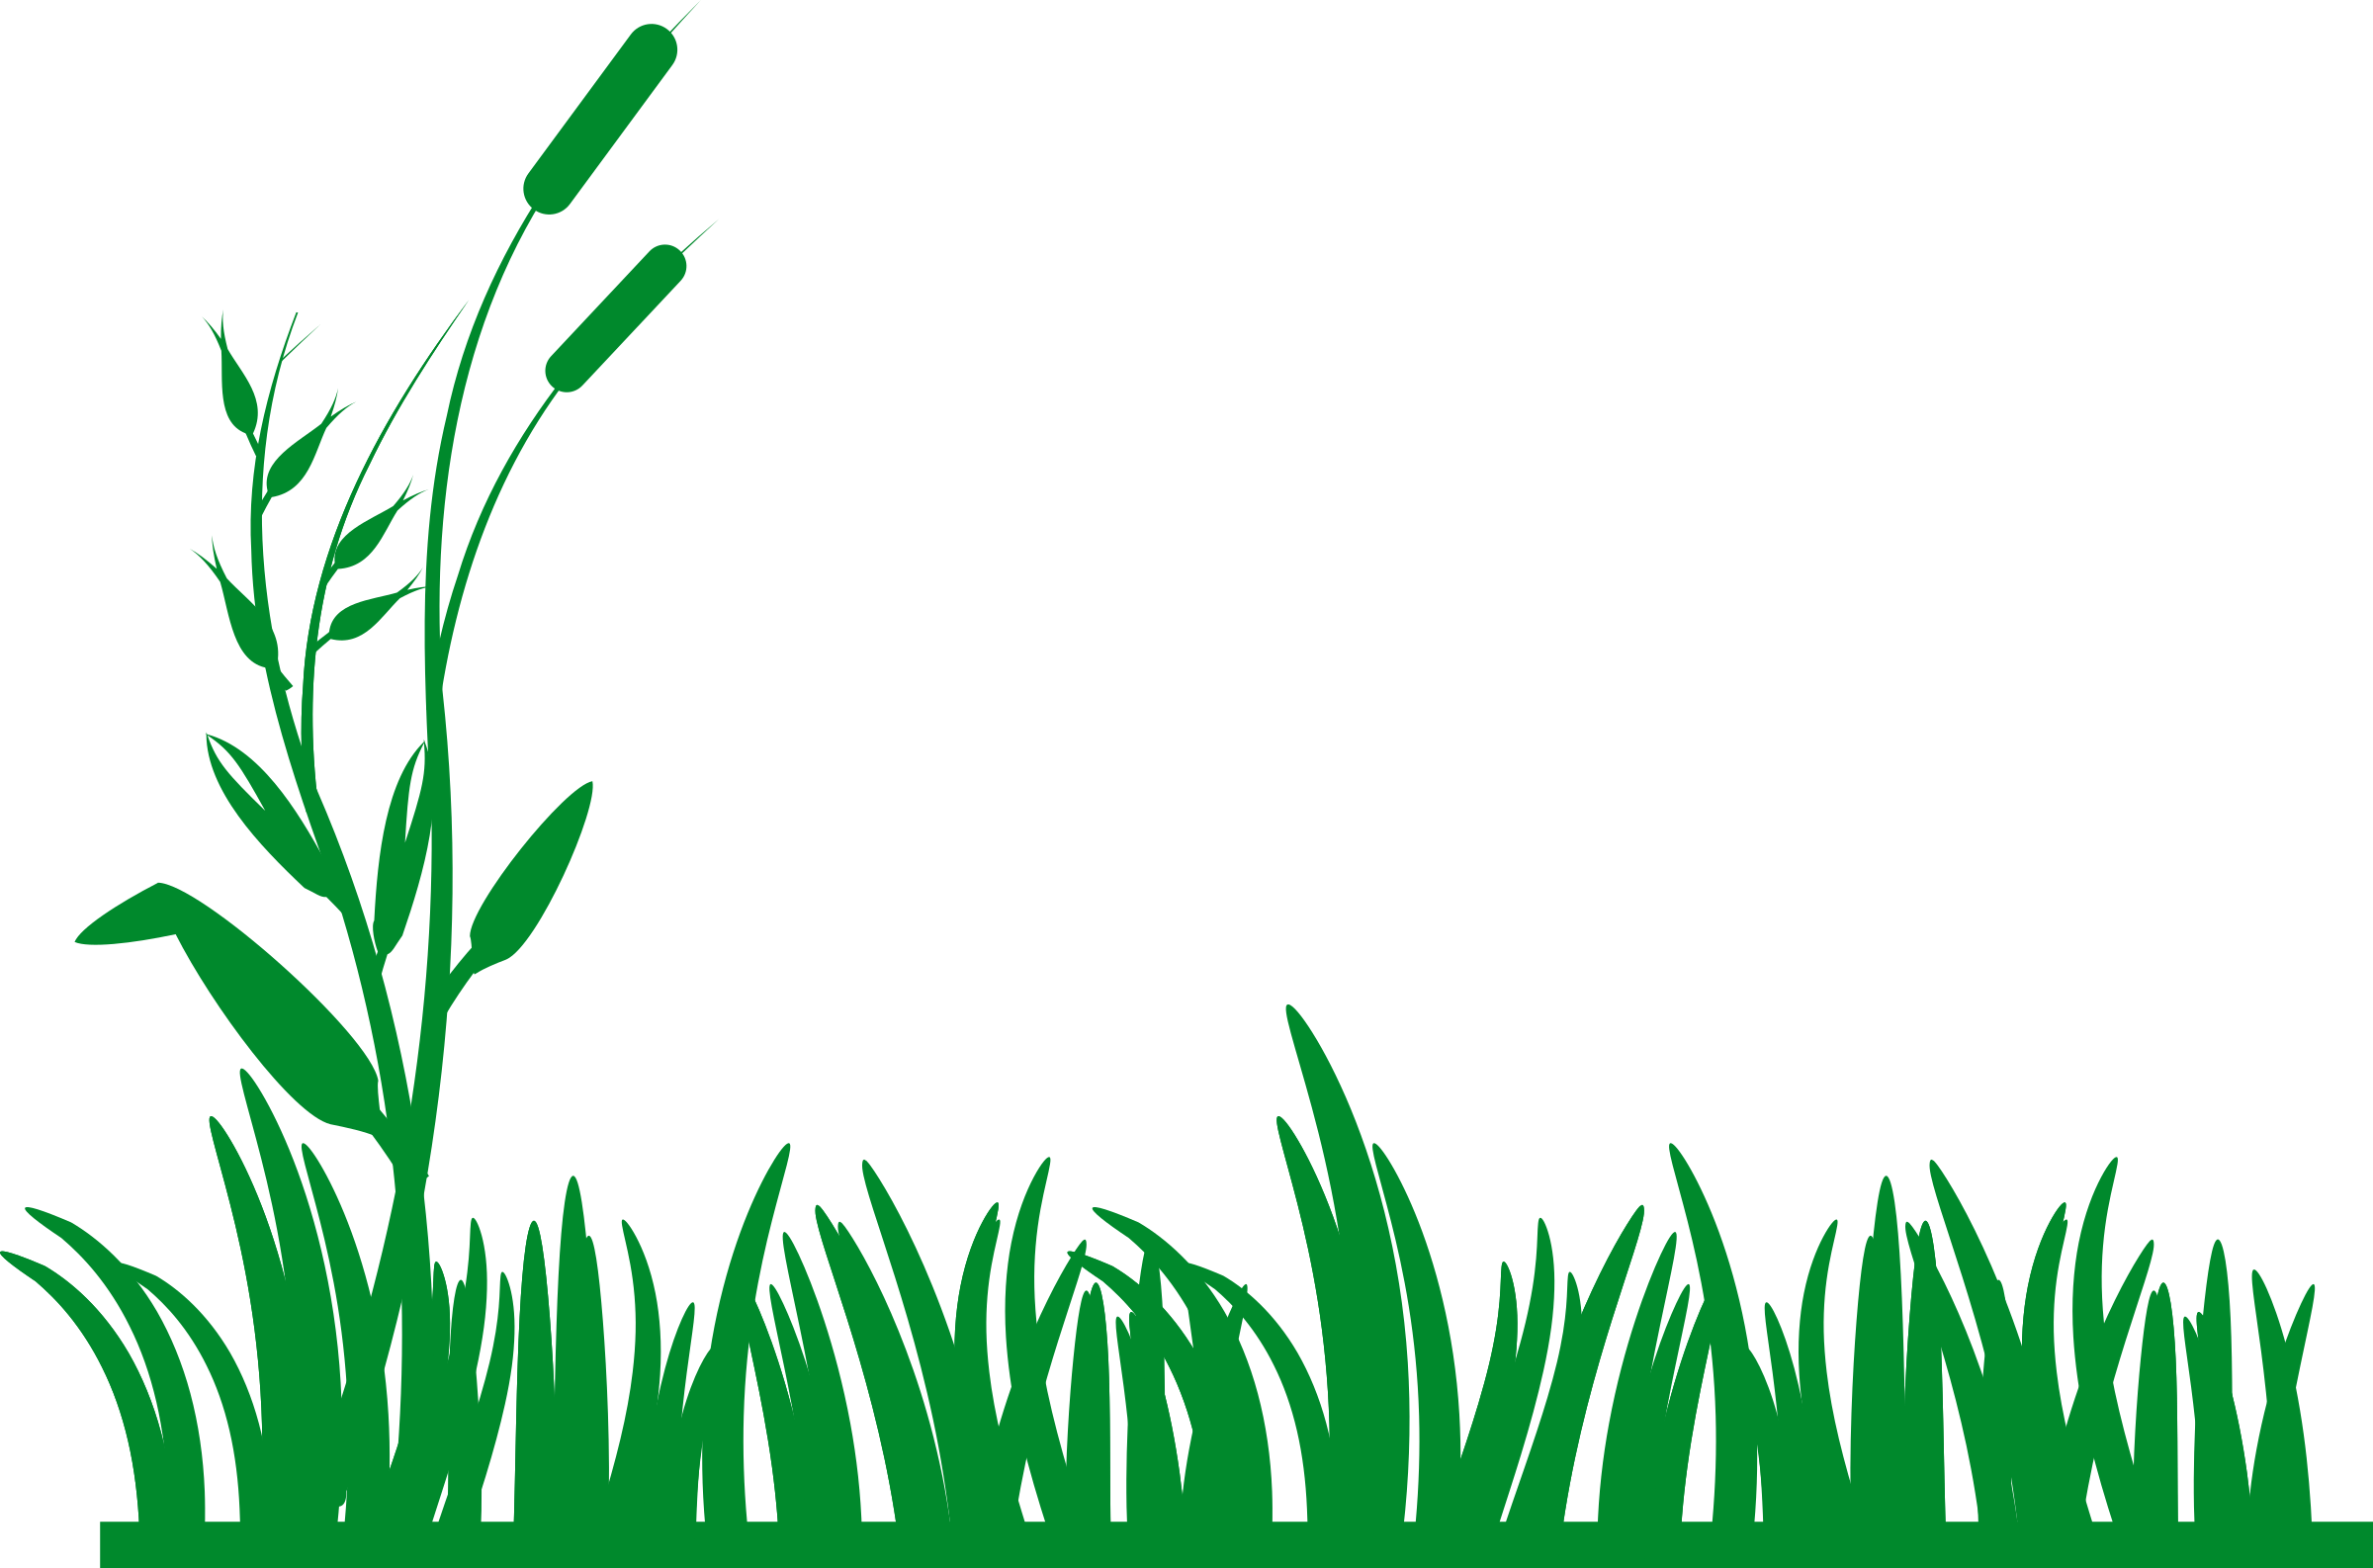 Background by rg silhouettes. Grass clipart rain